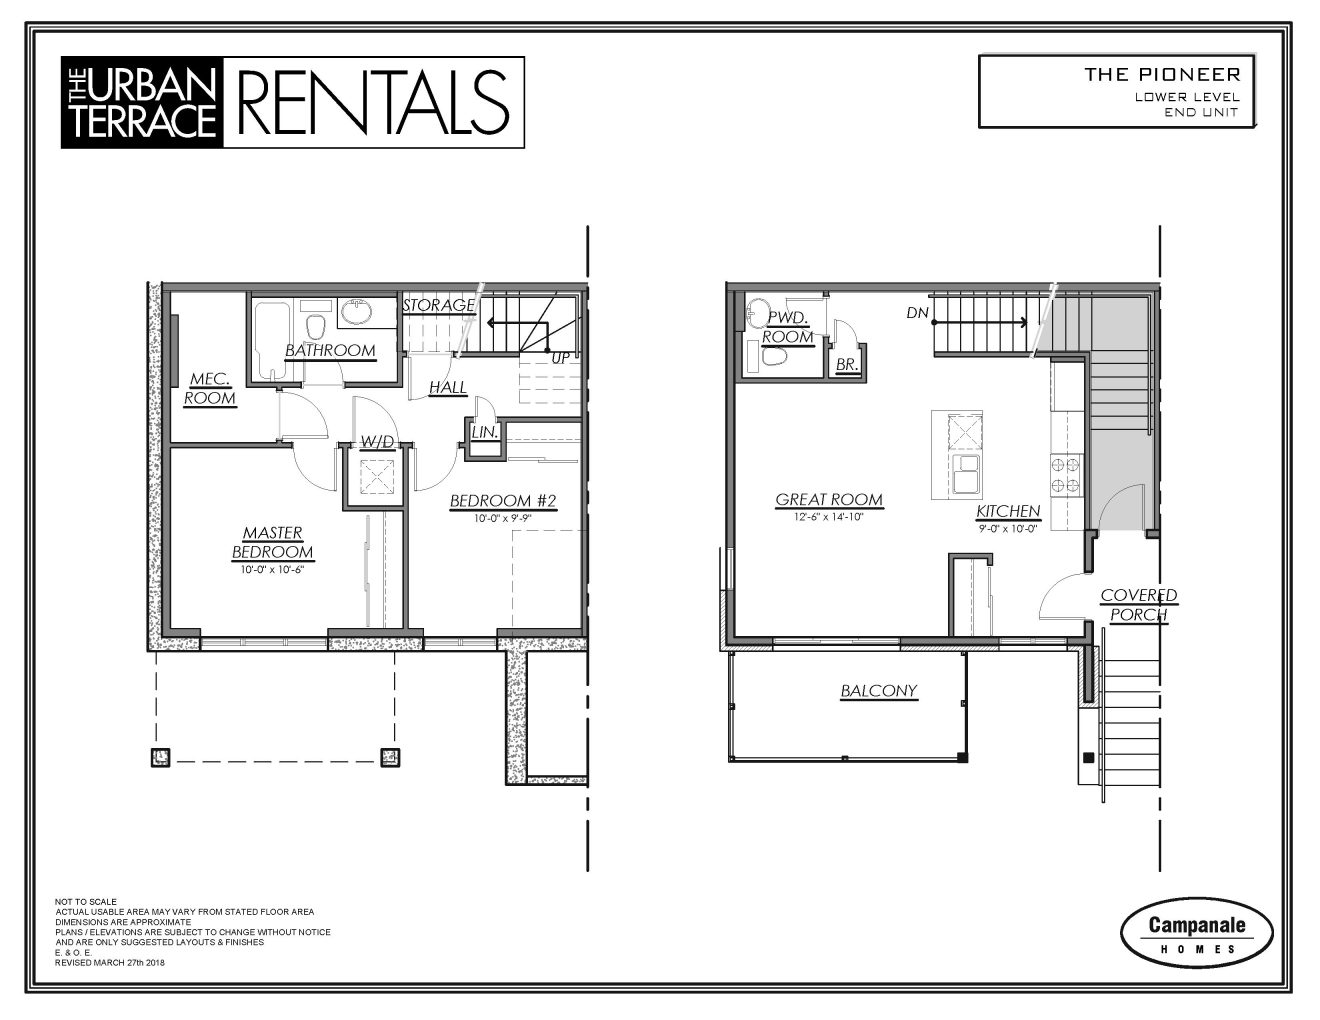 Urban_Terrace_Rental_Floorplan_Pioneer